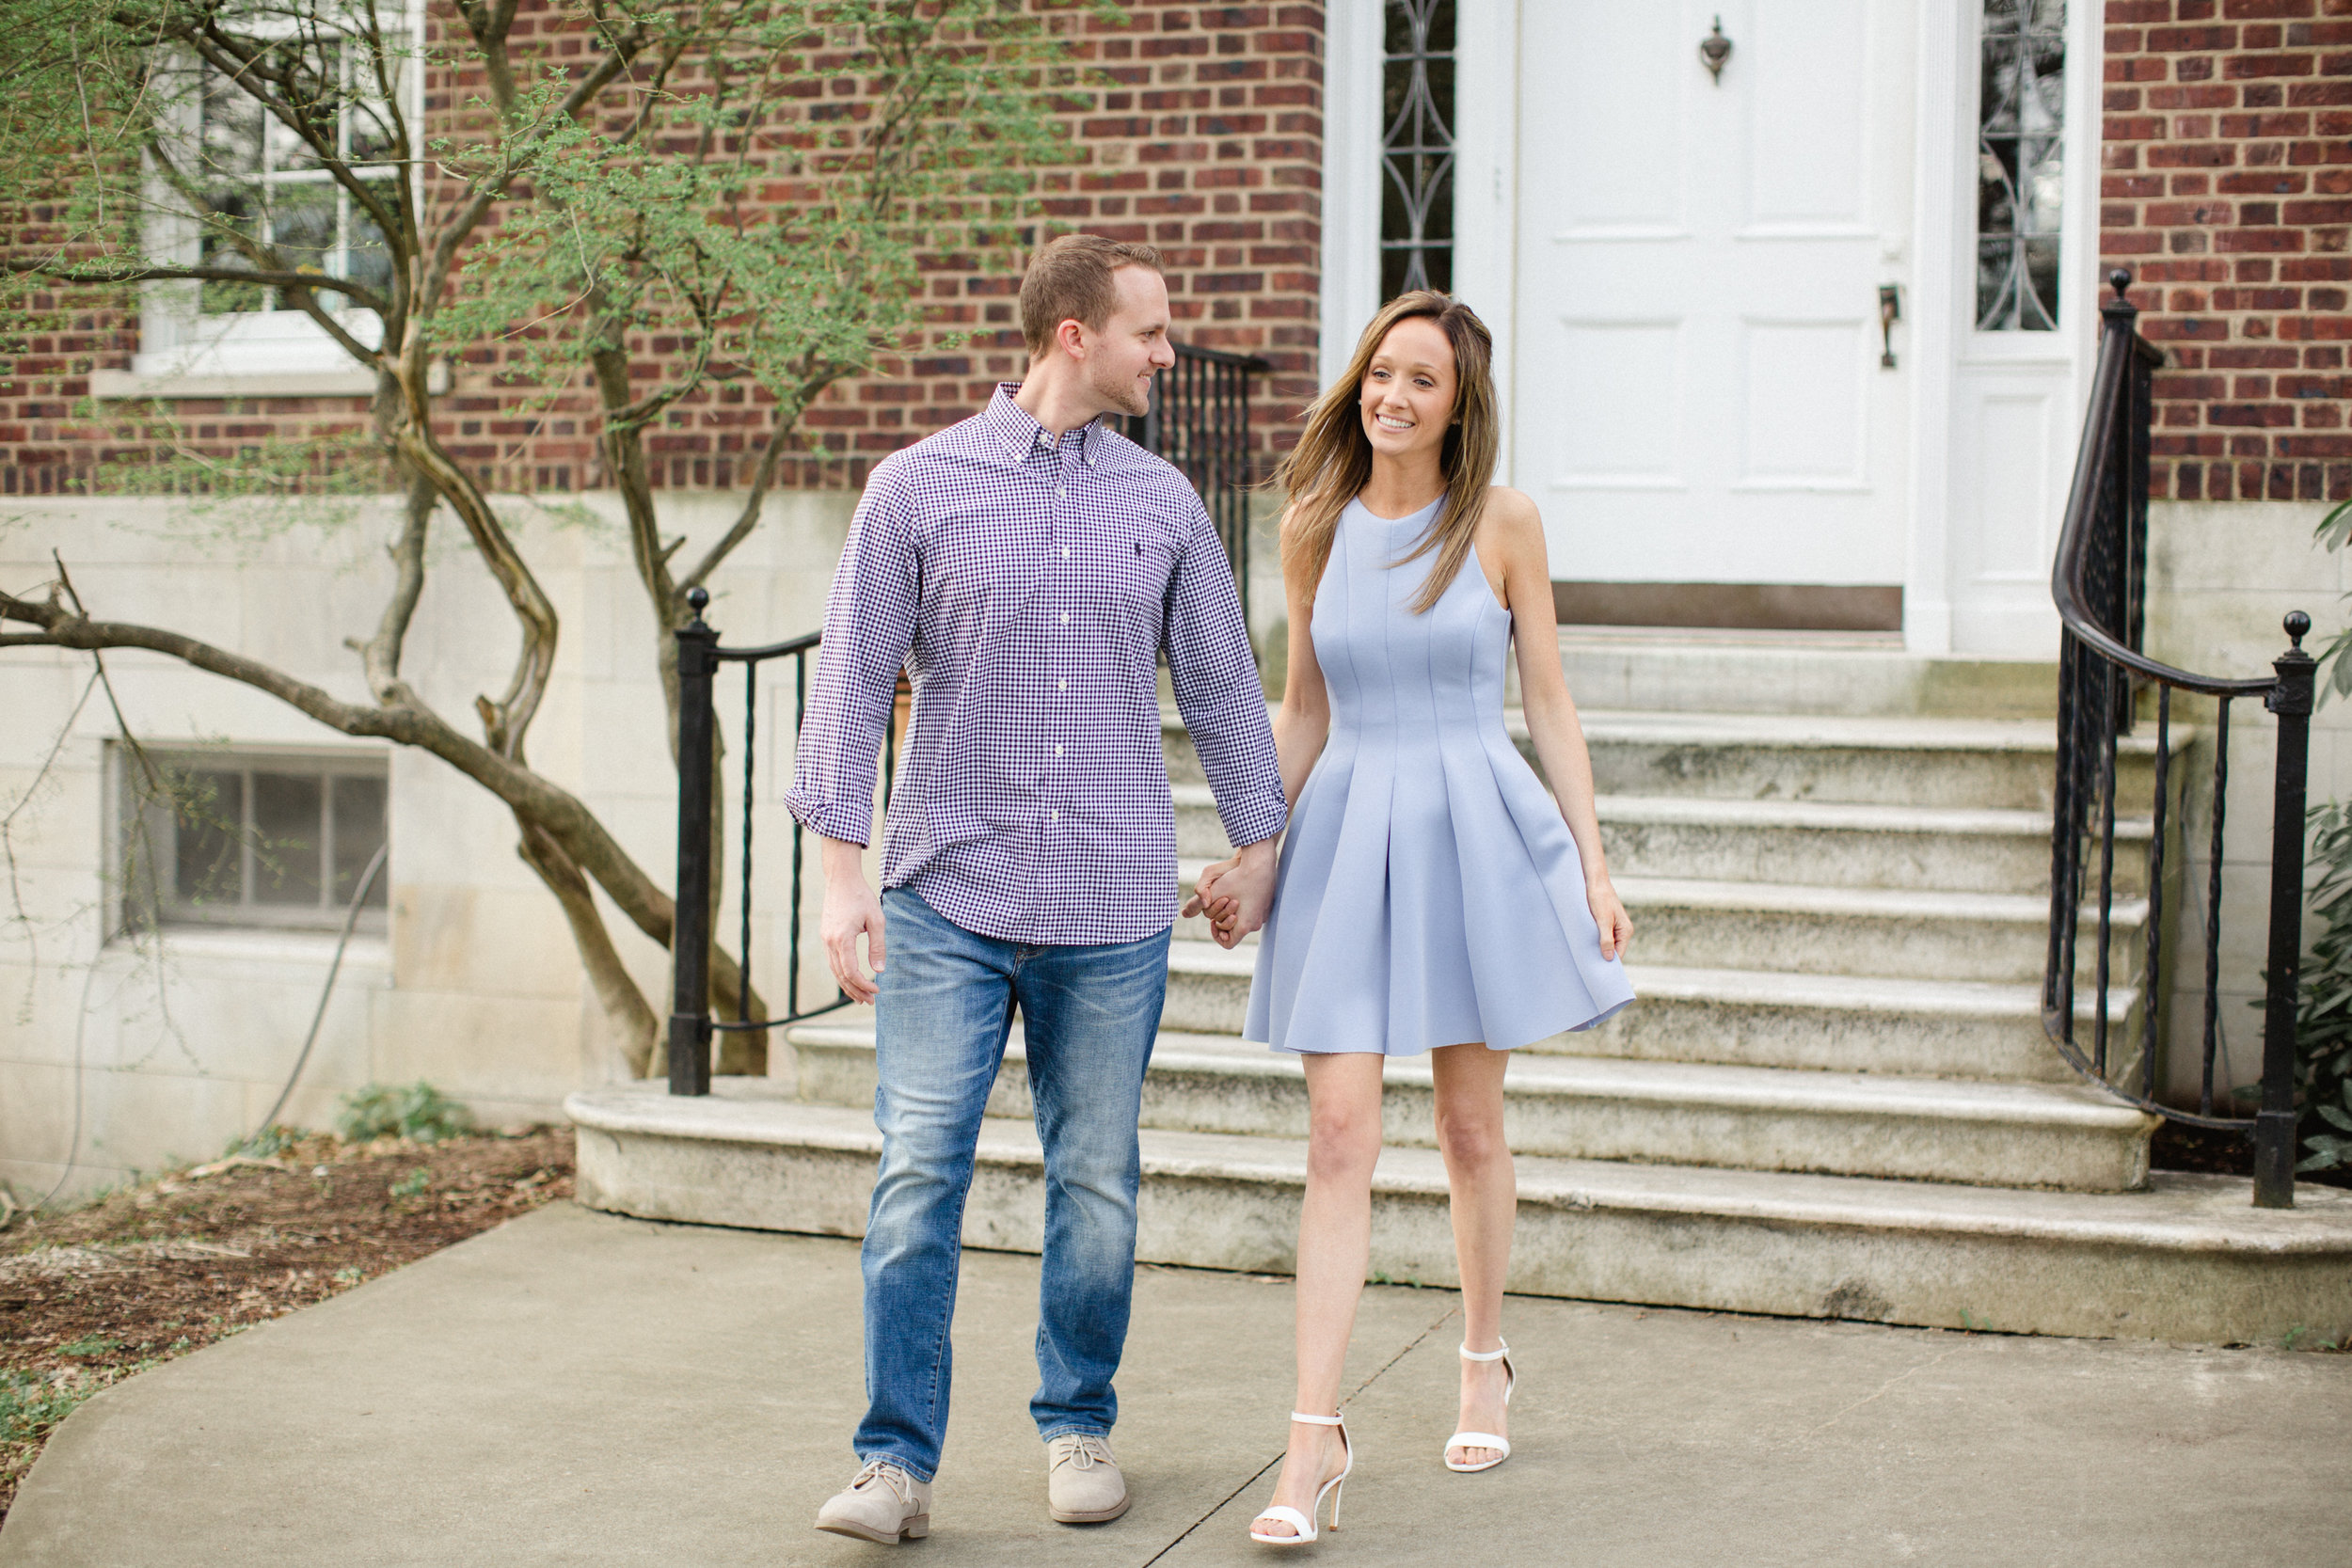 Waverly Clarks Summit PA Engagment Sessiojn_JDP-18.jpg